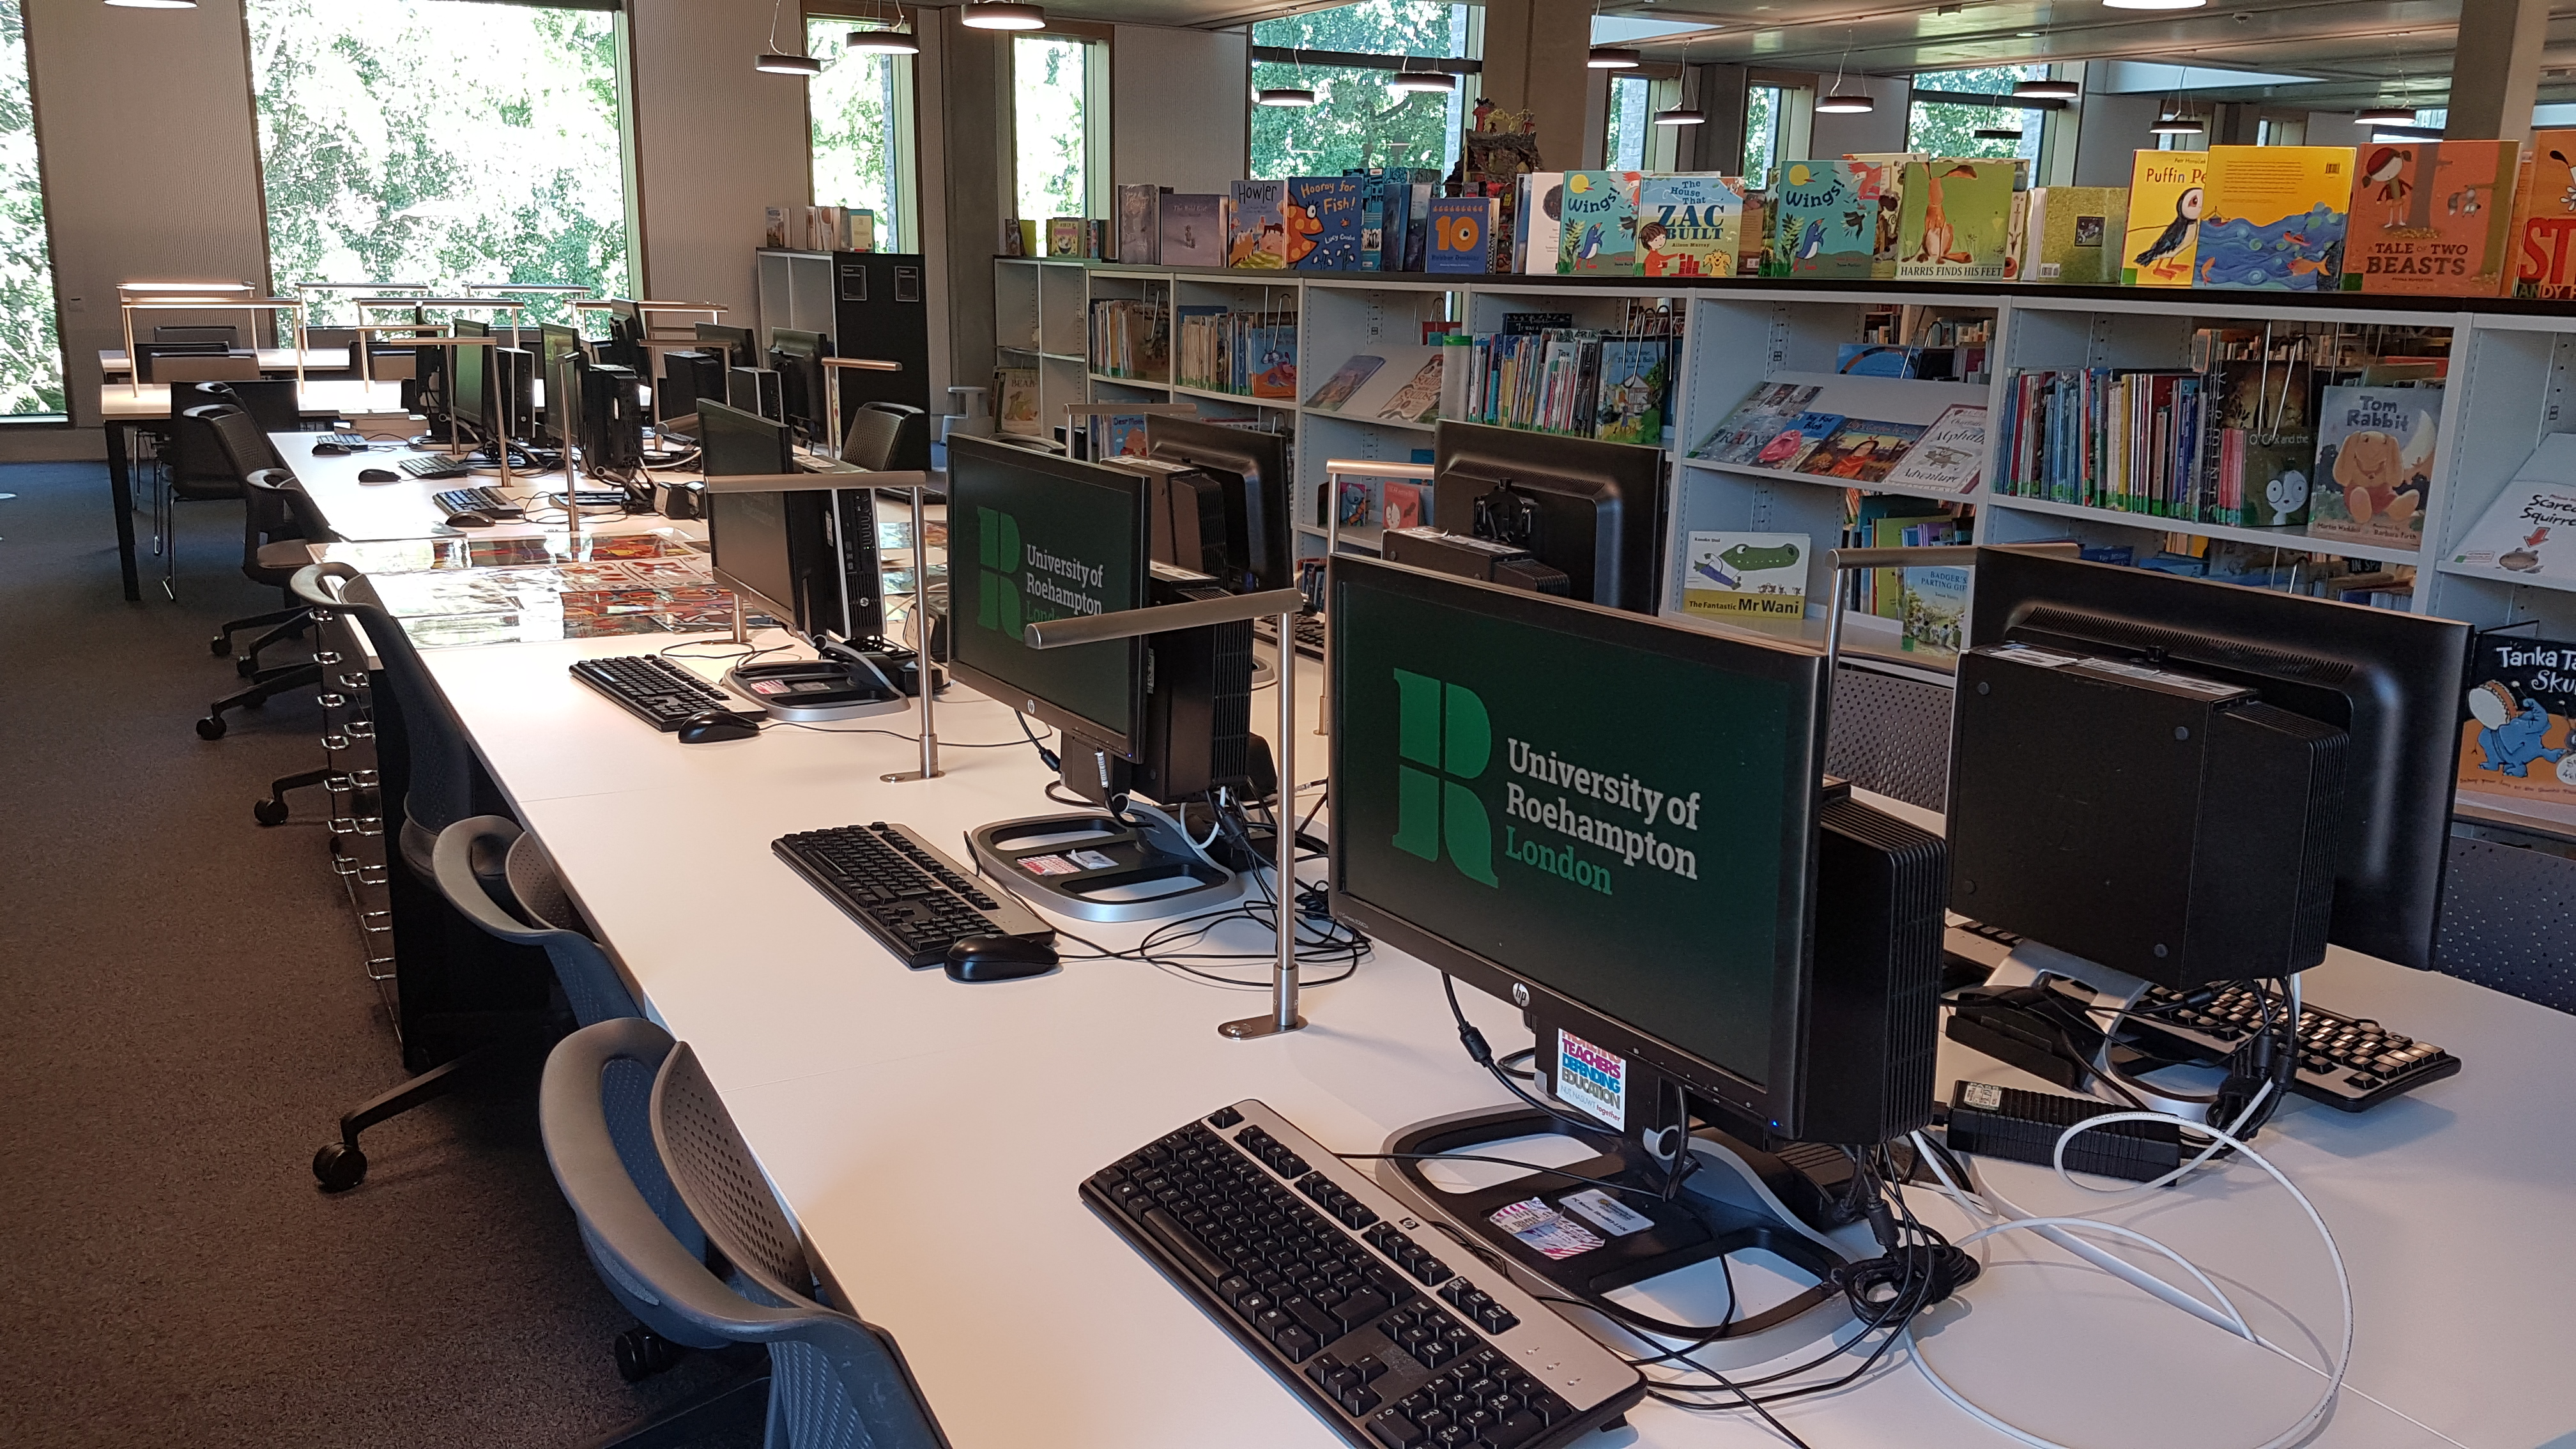 The school experience area from near the computers - the picture book collection, a number of PCs and some study tables to the left can be seen